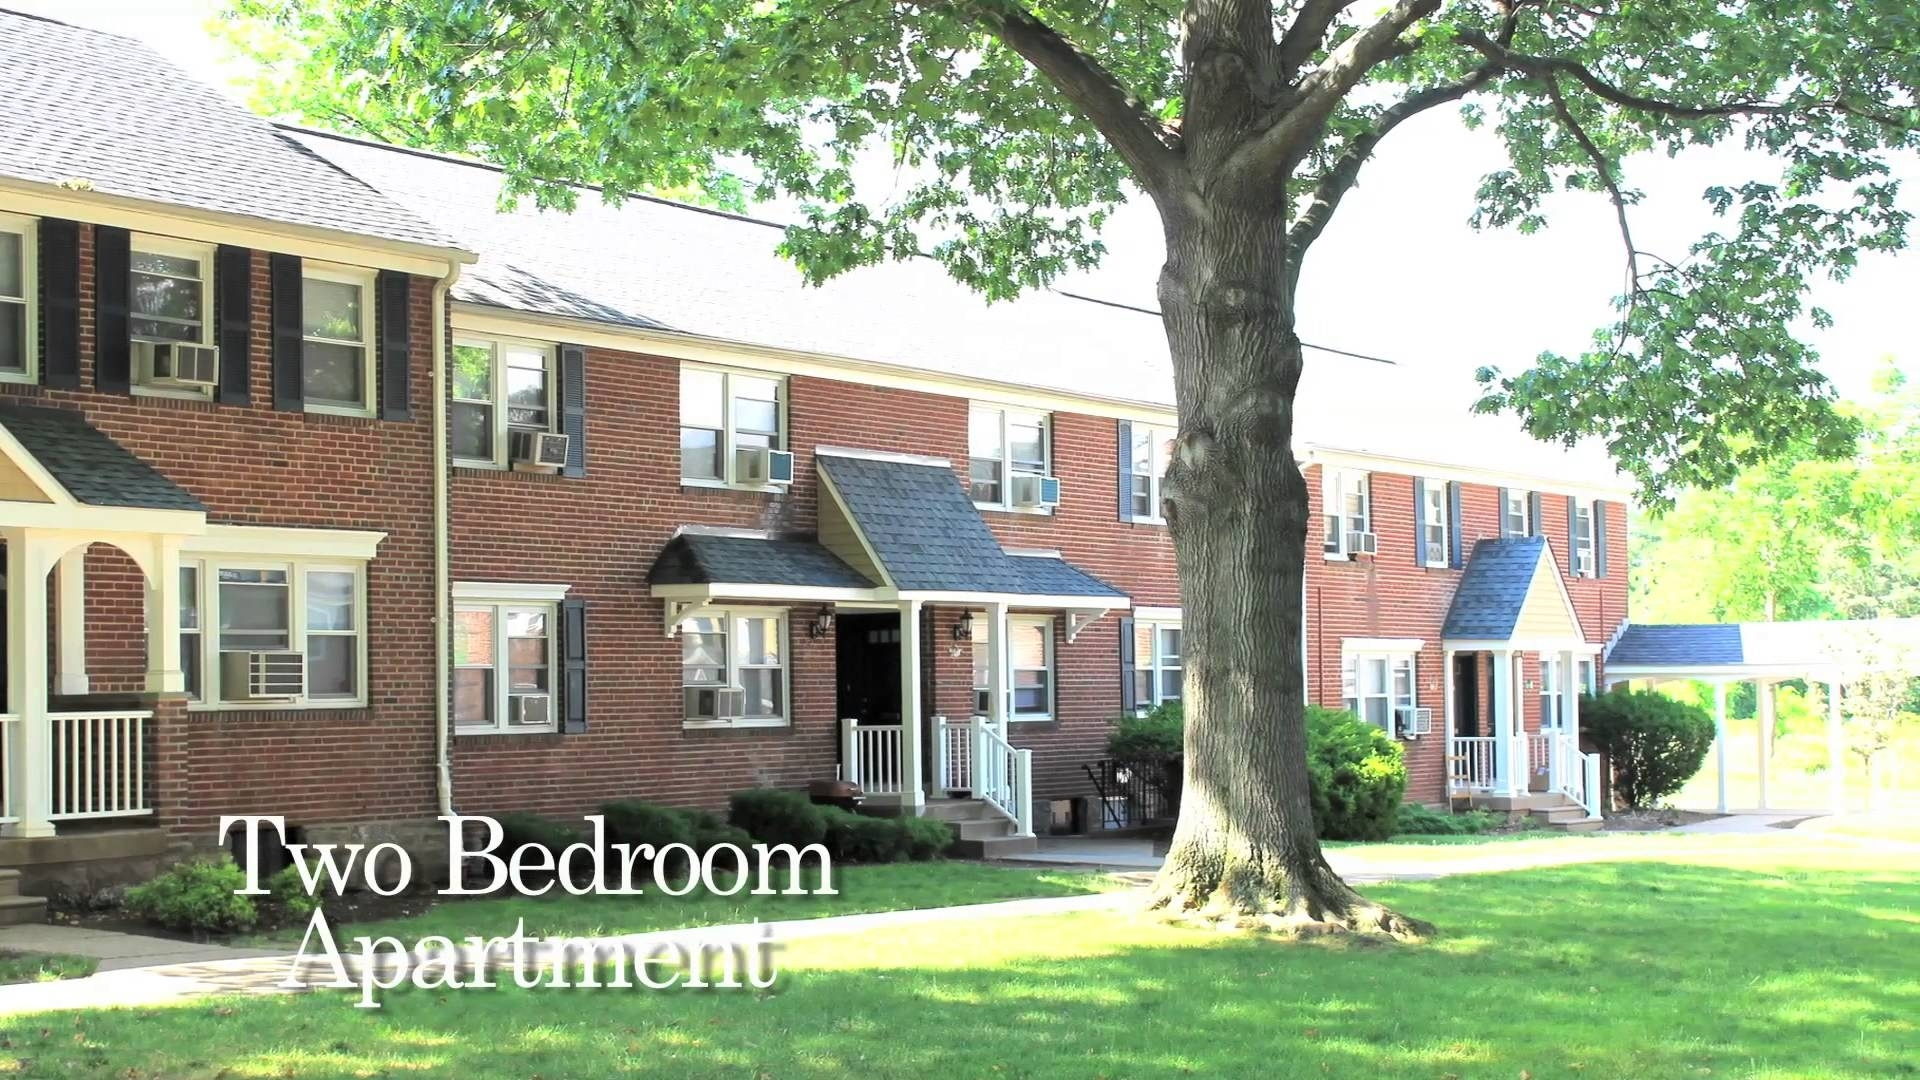 Lynnewood Gardens Apartments Elkins Park Pa - Youtube intended for Lynnwood Garden Apartments